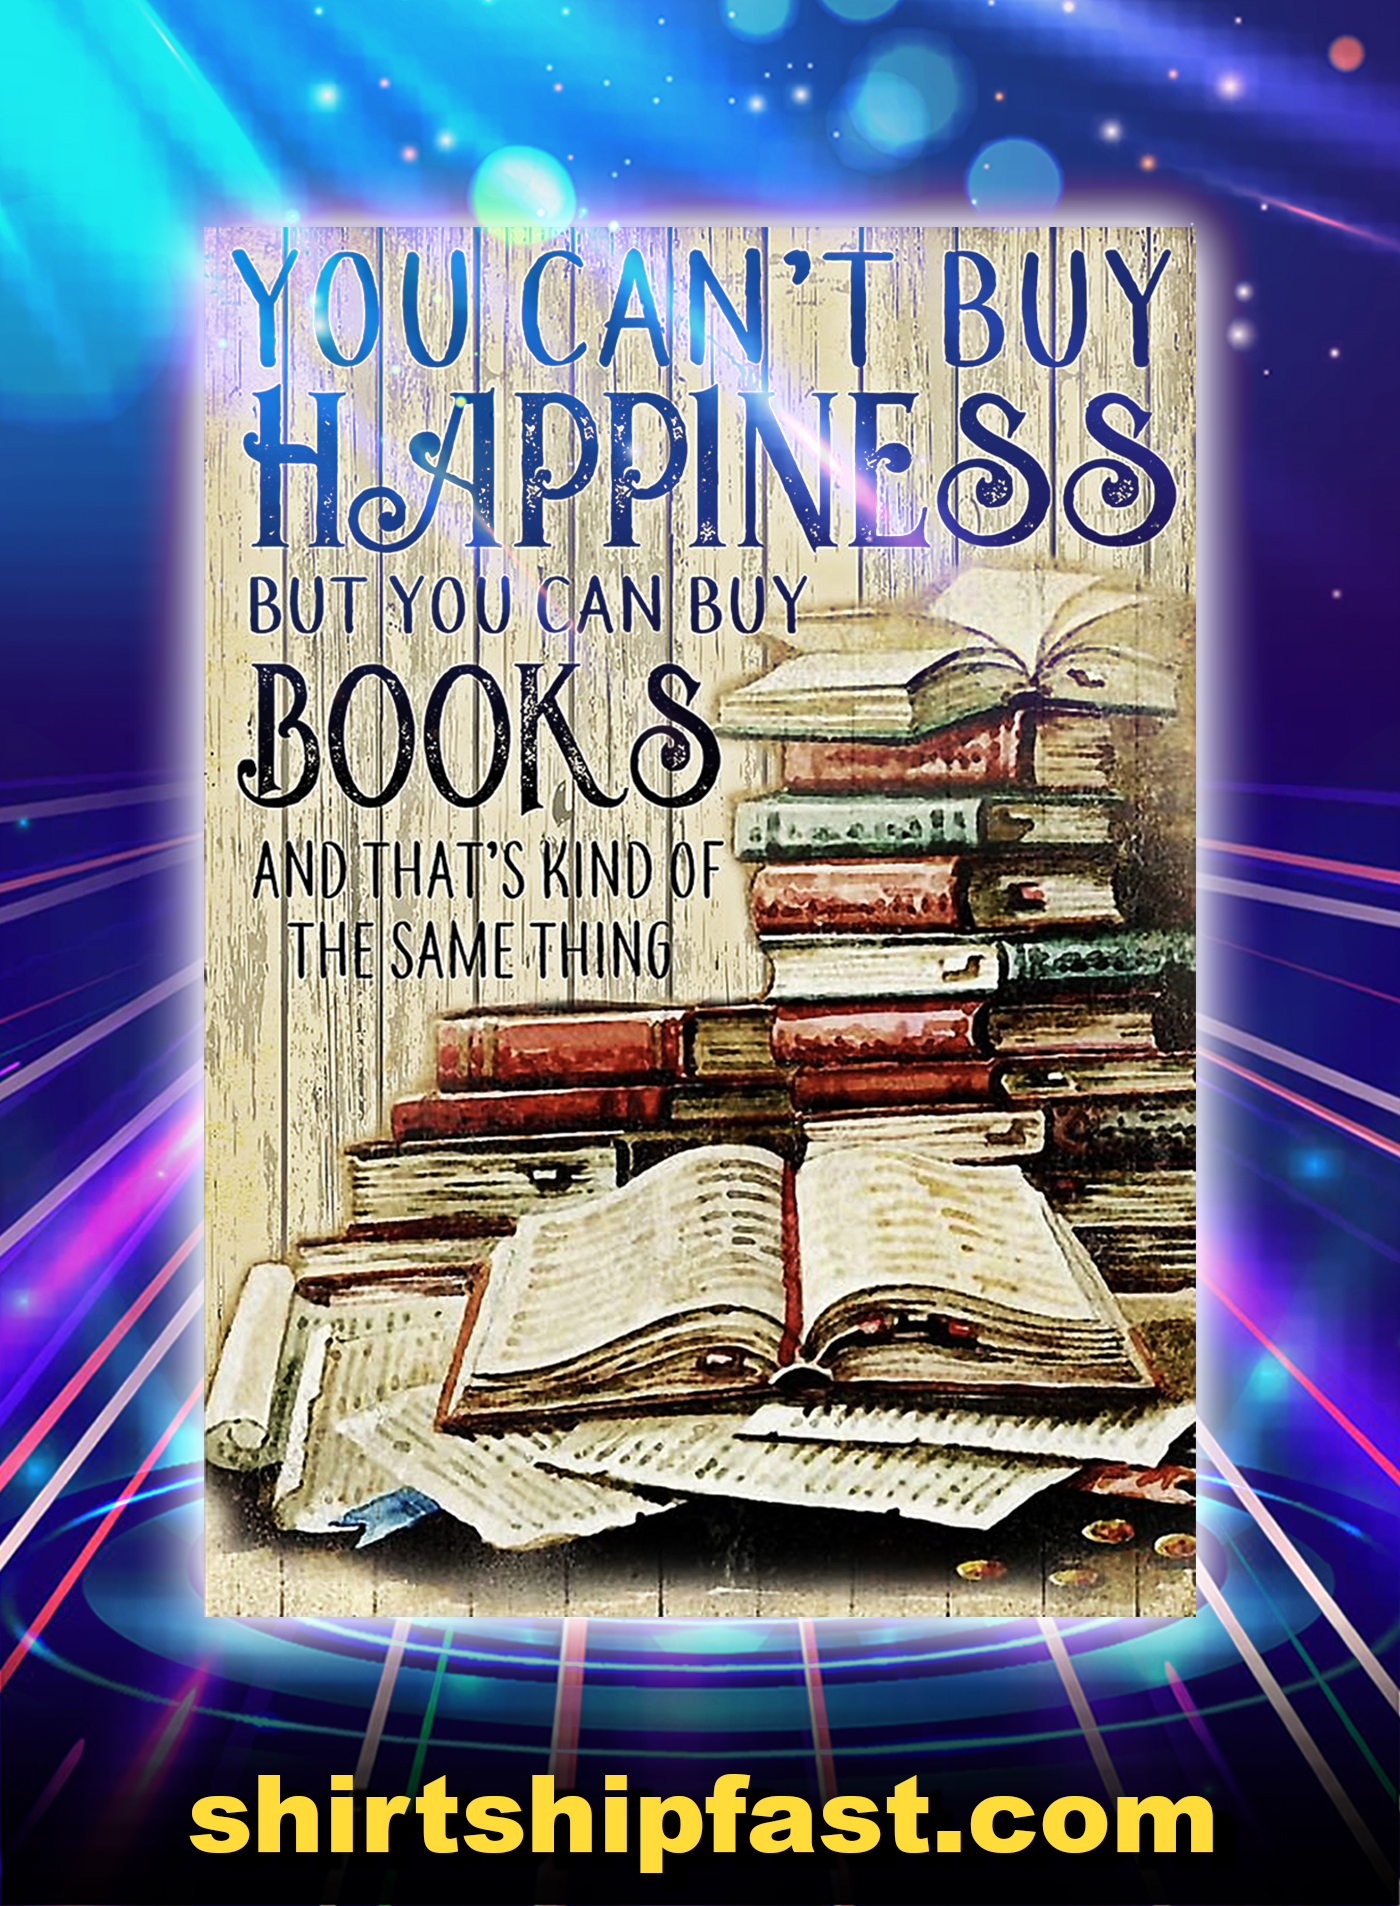 You can't buy happiness but you can buy books poster - A1